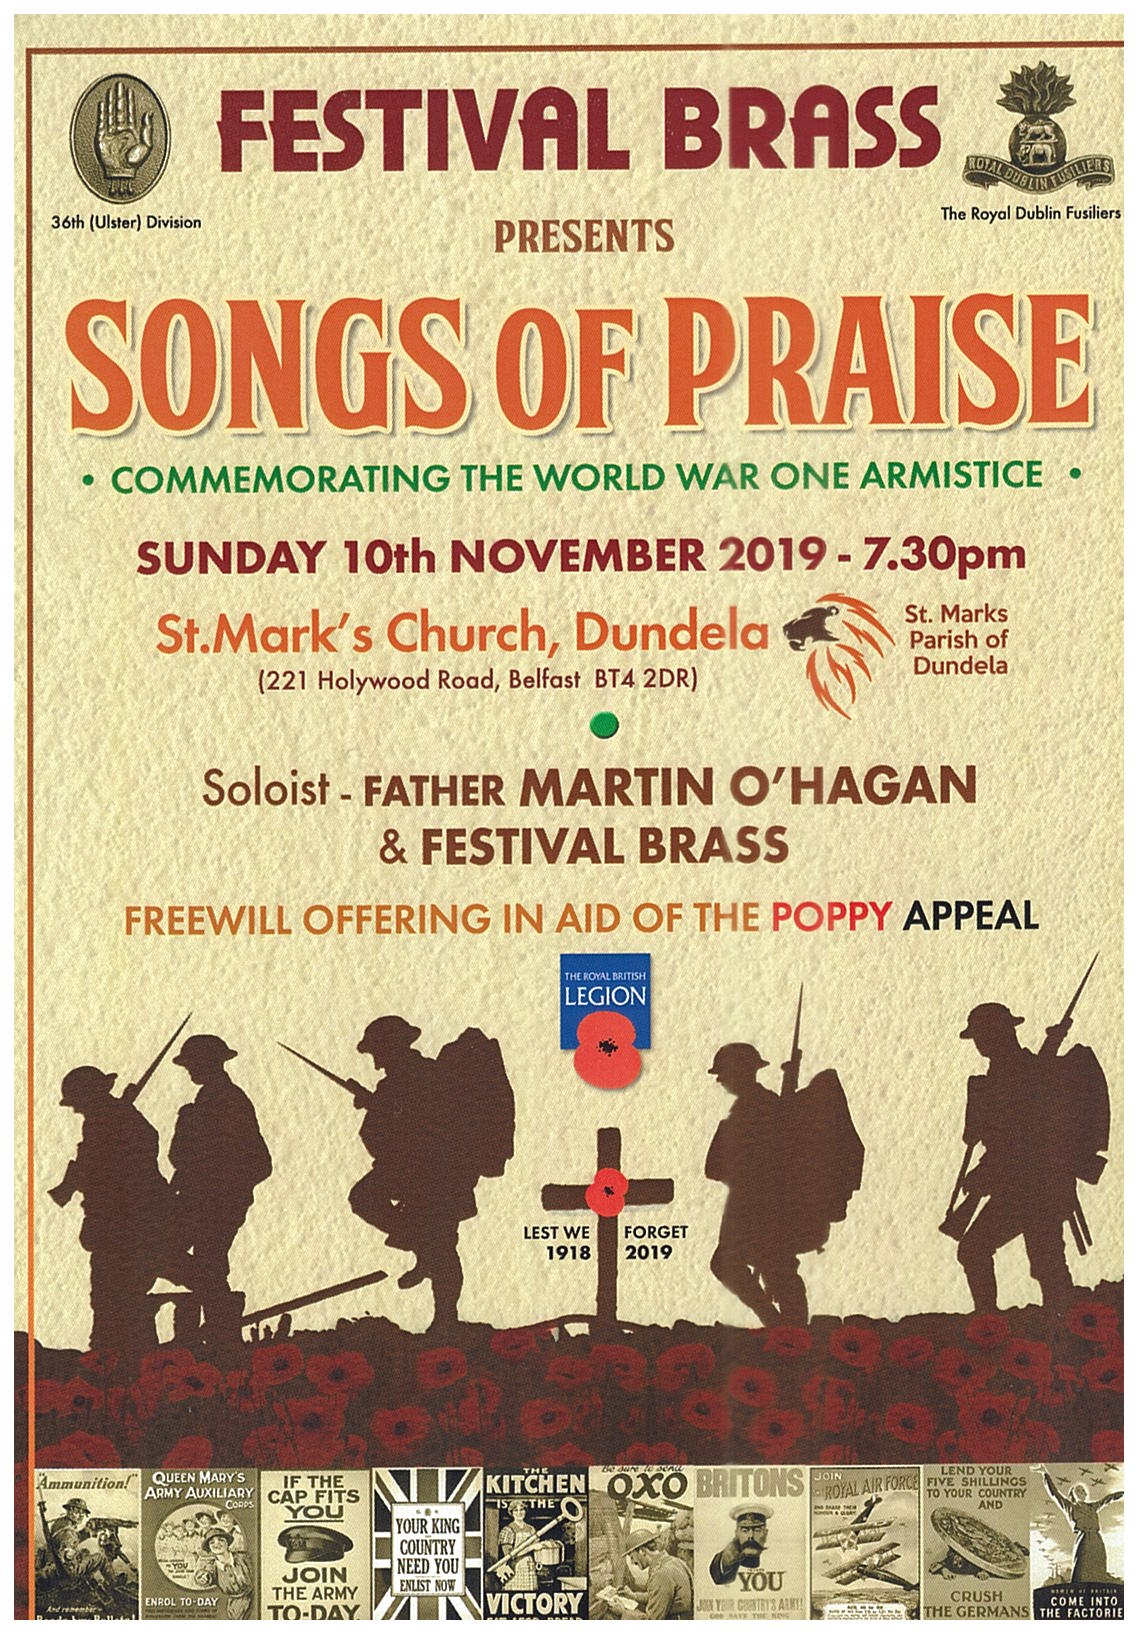 Festival Brass present Songs of Praise to commemorate the World War one armistice in Saont Mark's Dundelas, Belfast on 10th November 2019